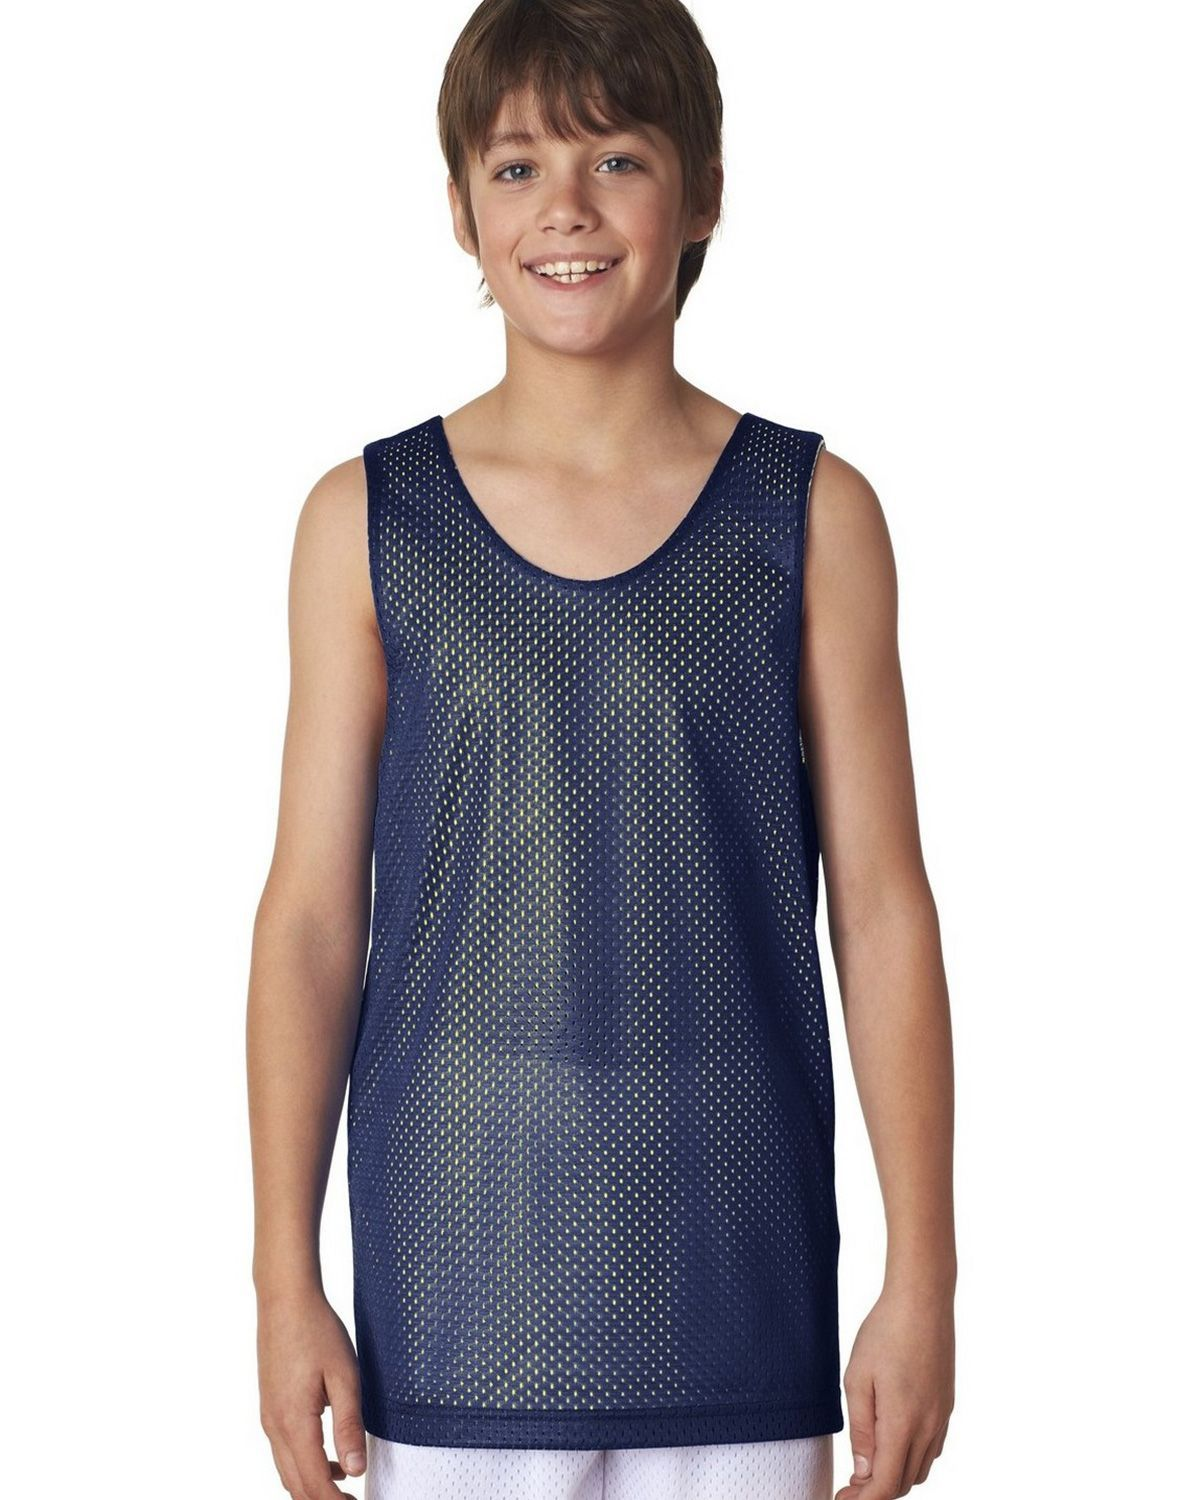 Image of A4 N2206 Youth Reversible Mesh Tank - Navy/Gold - S